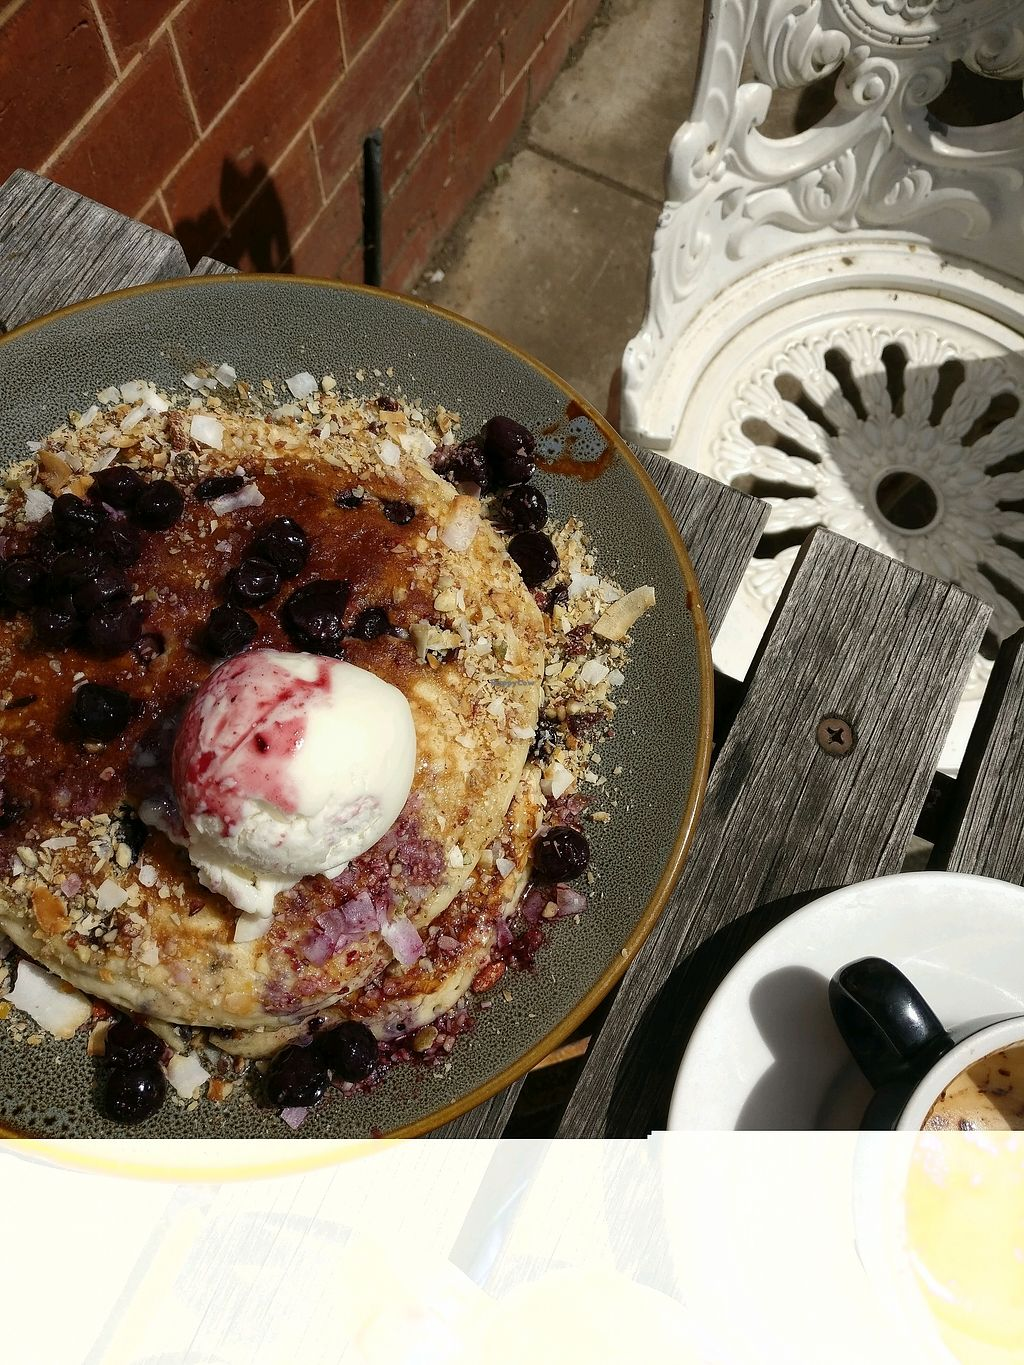 """Photo of Little Lucky Cafe  by <a href=""""/members/profile/Aloo"""">Aloo</a> <br/>blueberry pancakes <br/> January 14, 2018  - <a href='/contact/abuse/image/98118/346321'>Report</a>"""